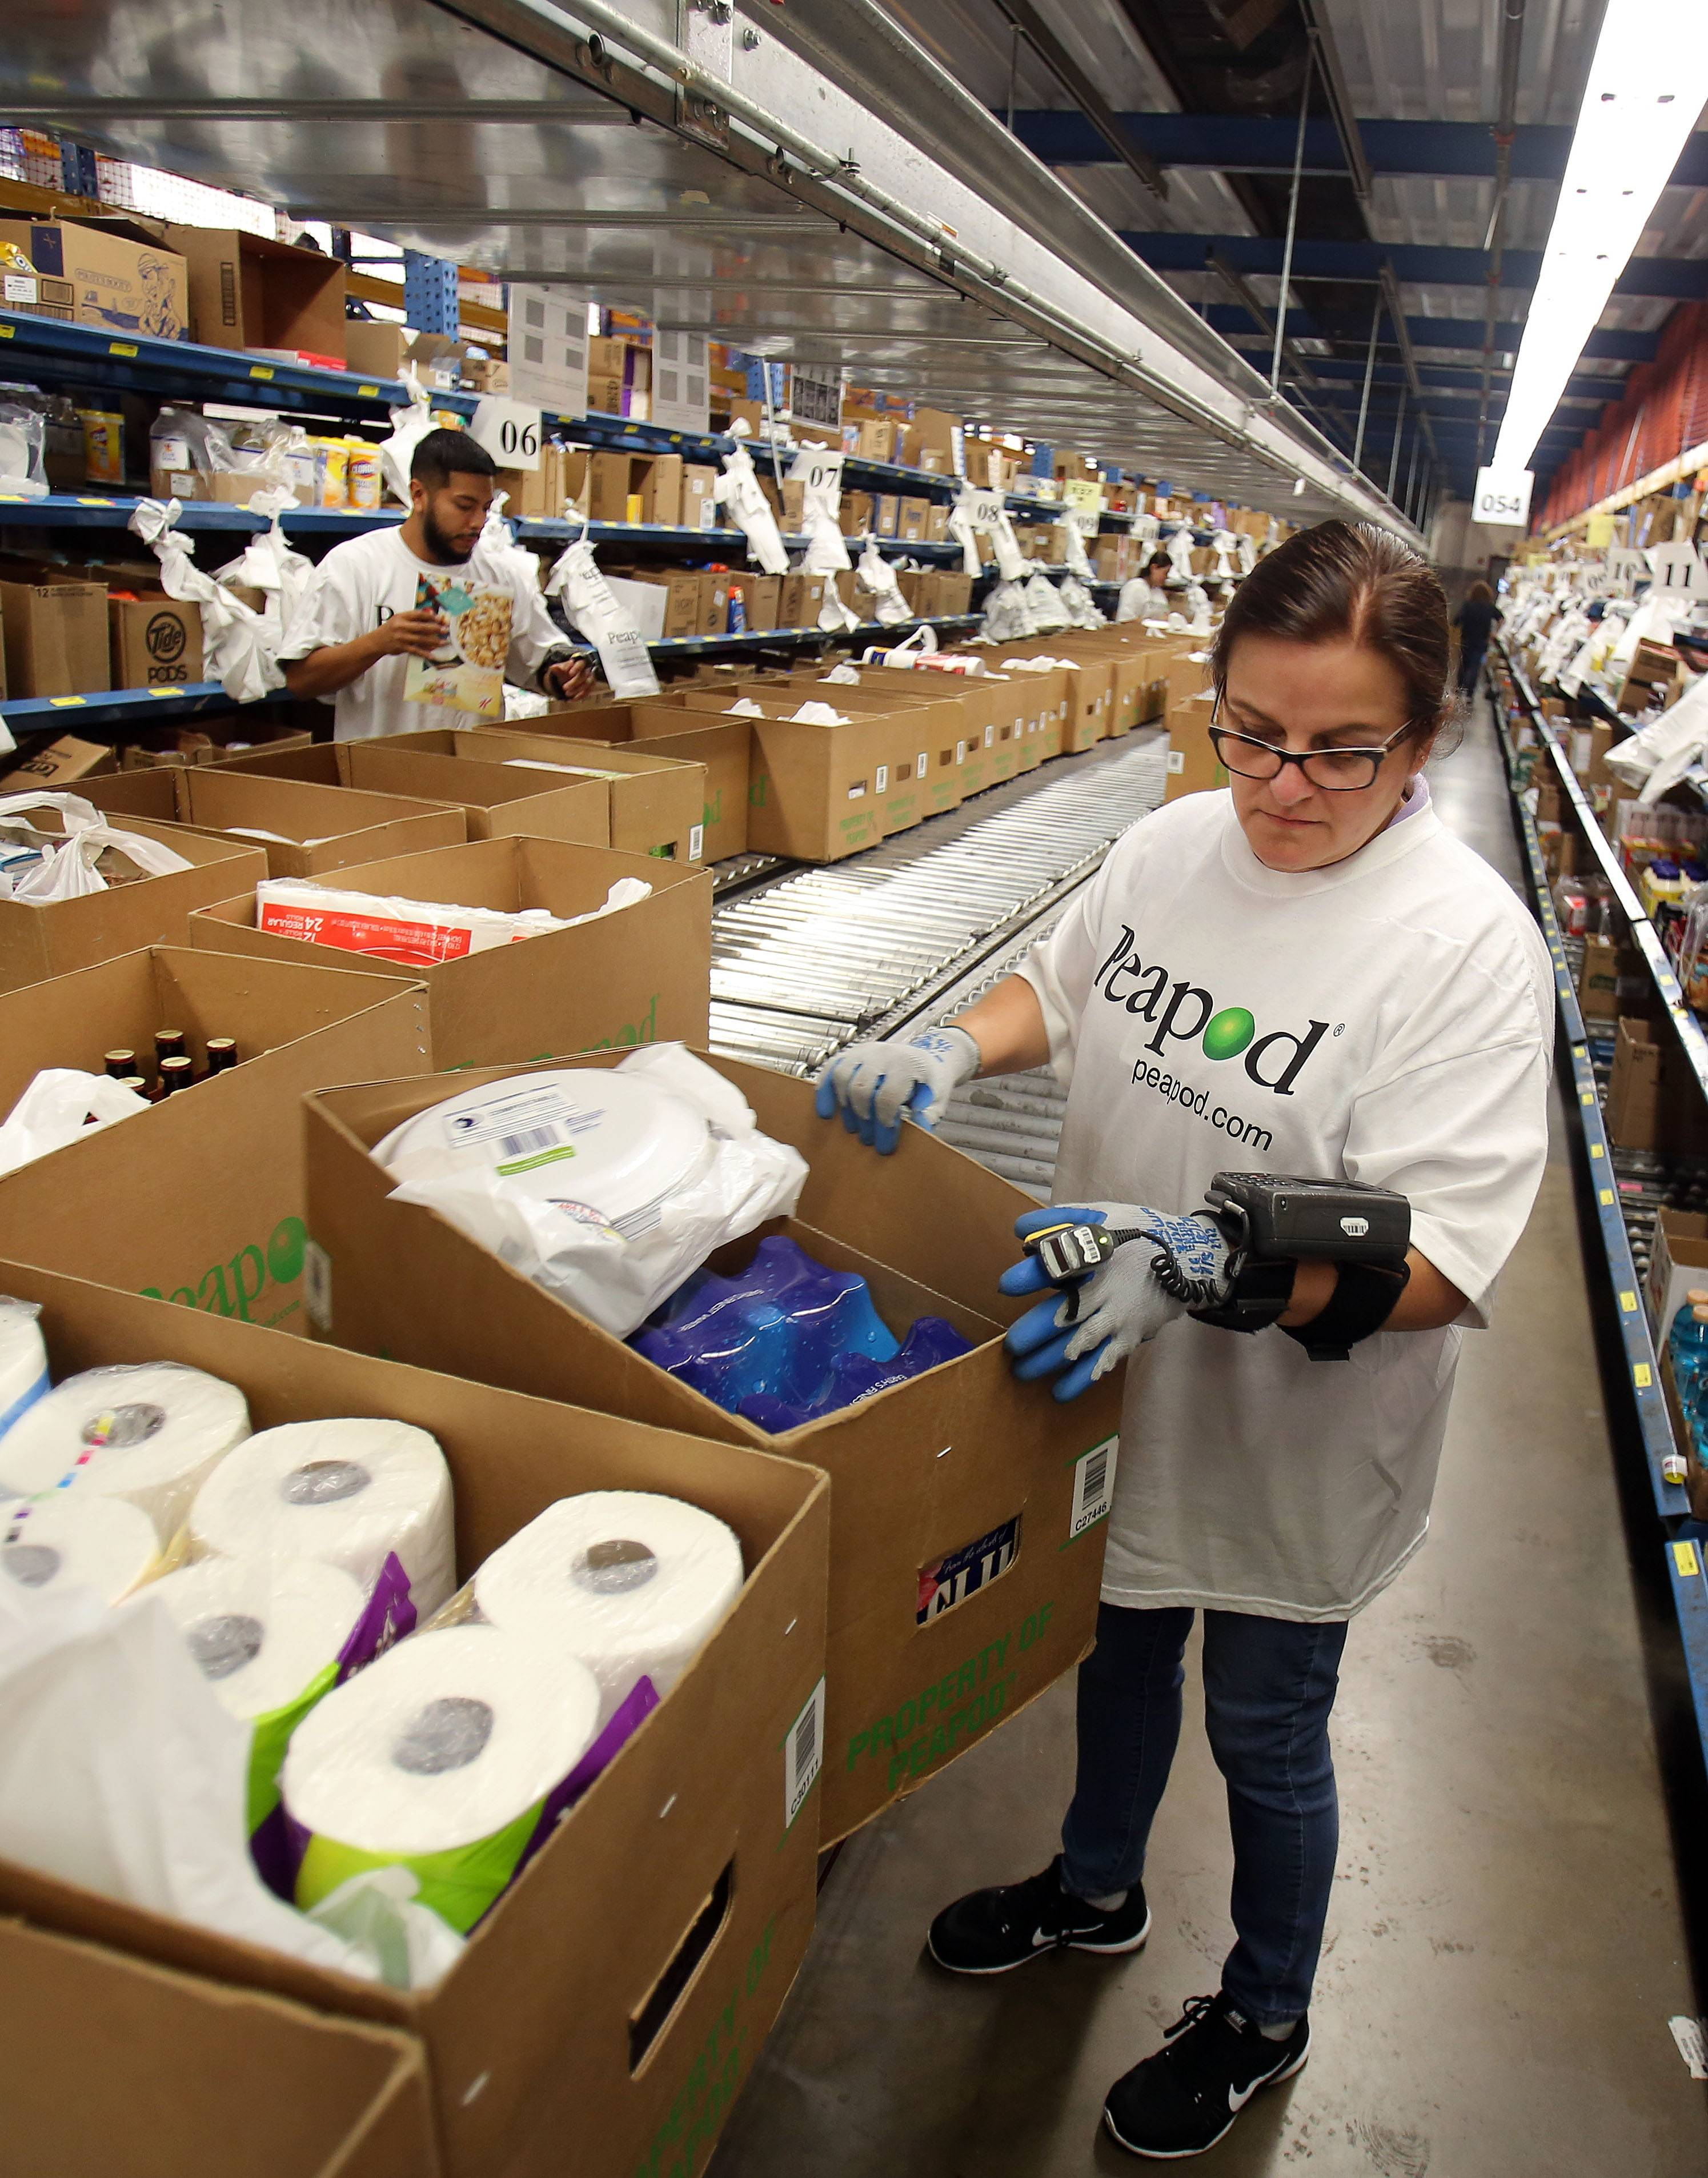 Maria Deanda packs orders at the Peapod facility in Lake Zurich.